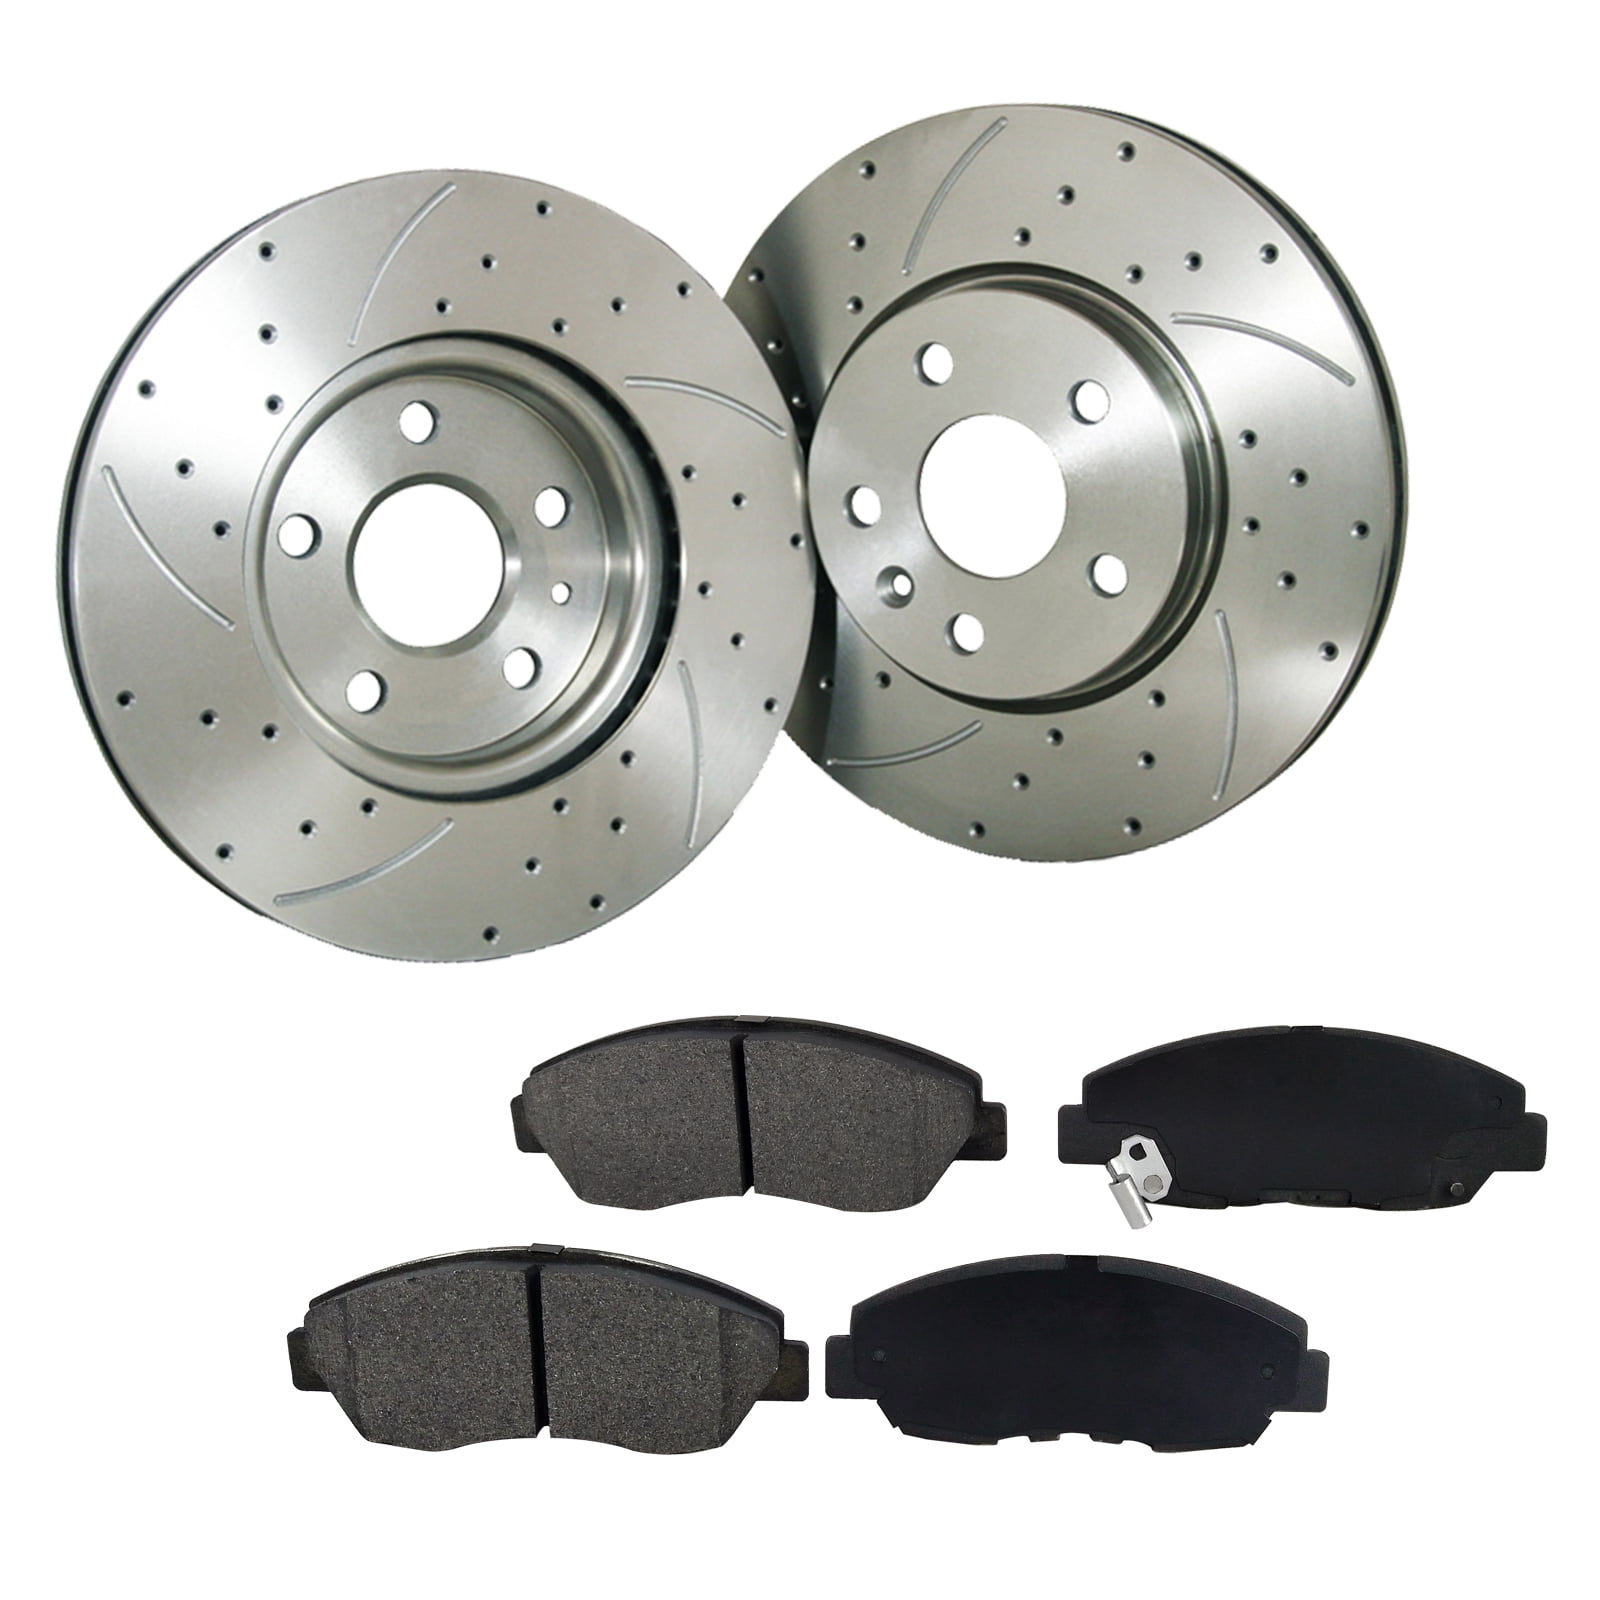 [2 Disc 4PADS]Front Drilled Slotted Brake Rotor & Pads fit Honda Civic Acura RSX by Transglobe Automotive